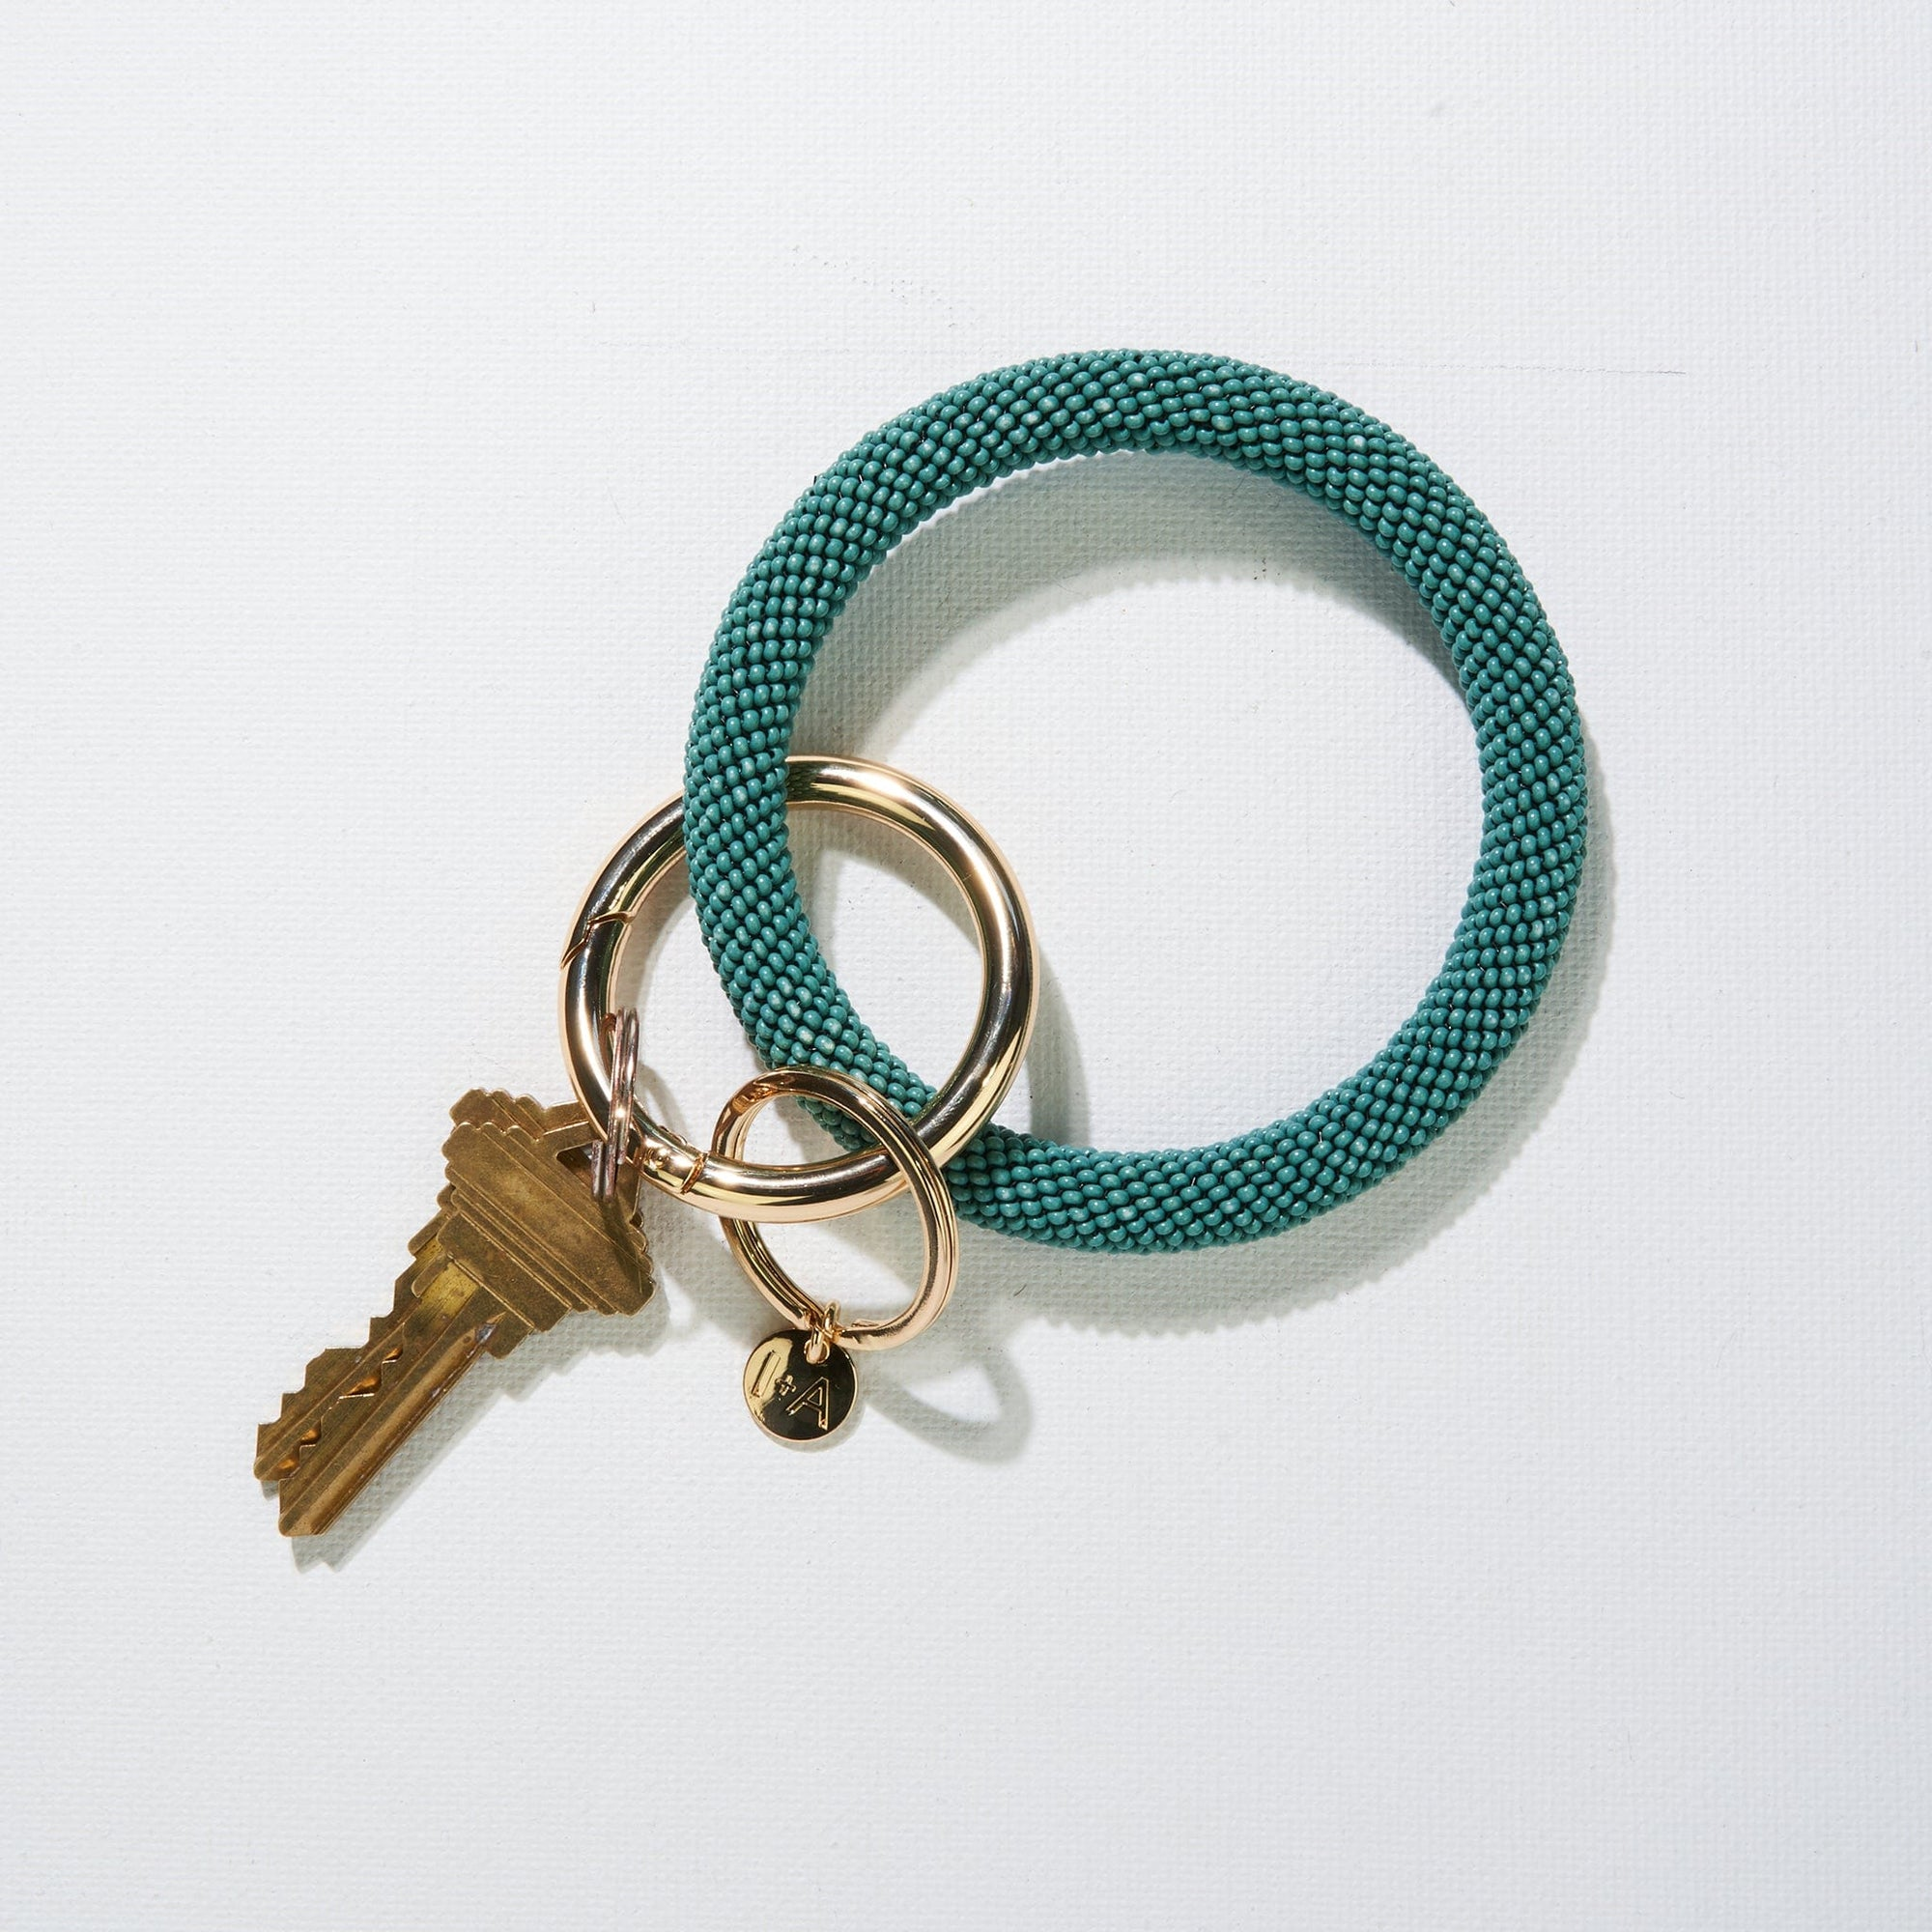 Teal Seed Bead Key Ring